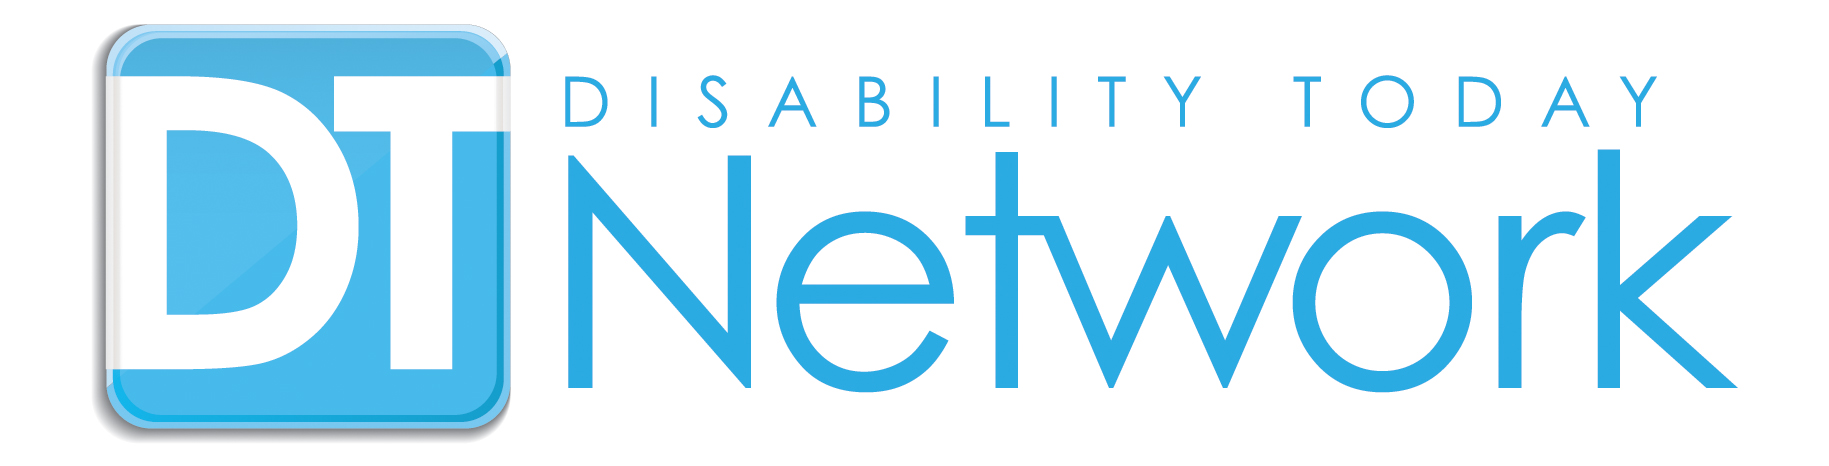 Disability Today logo